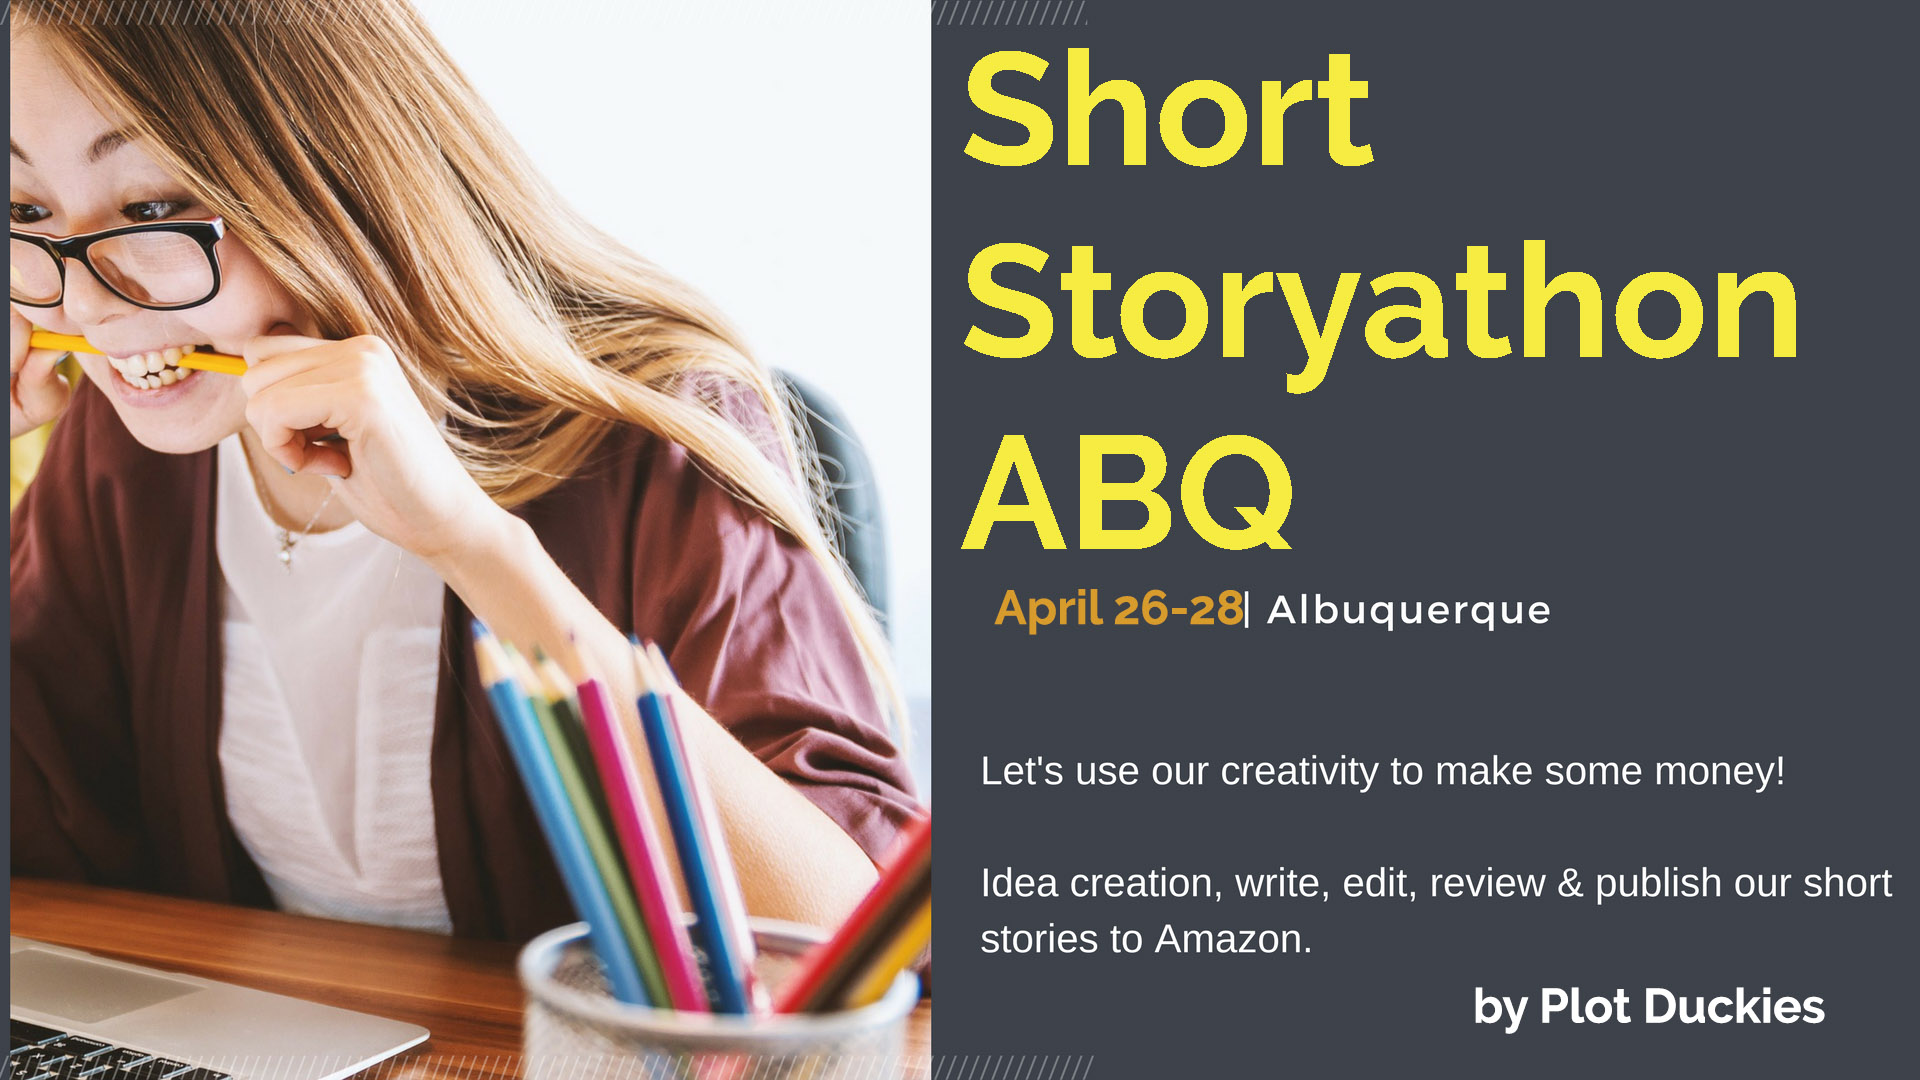 Short Story-A-Thon ABQ April